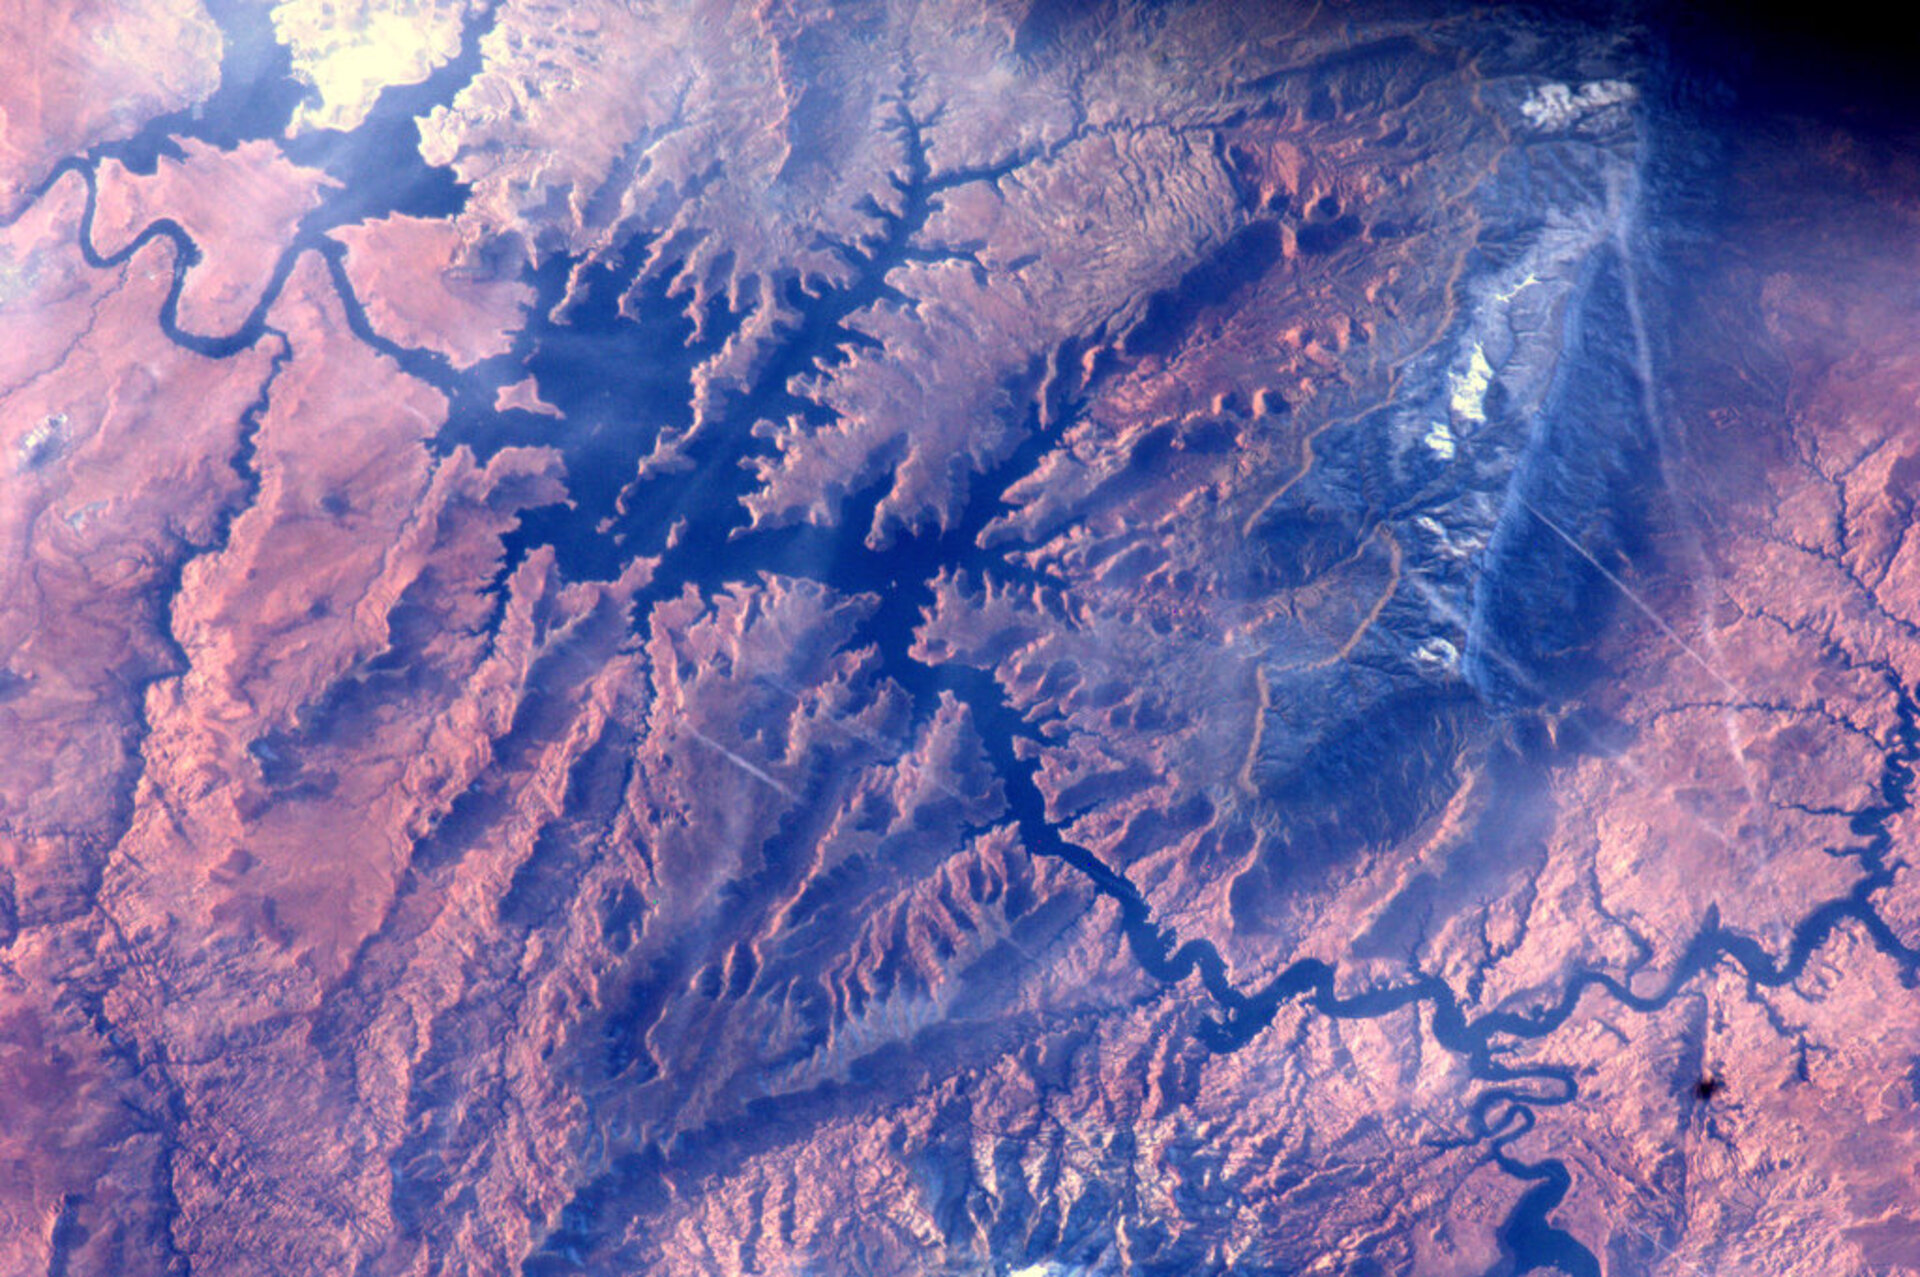 Lake Powell and the Colorado river, seen from the ISS